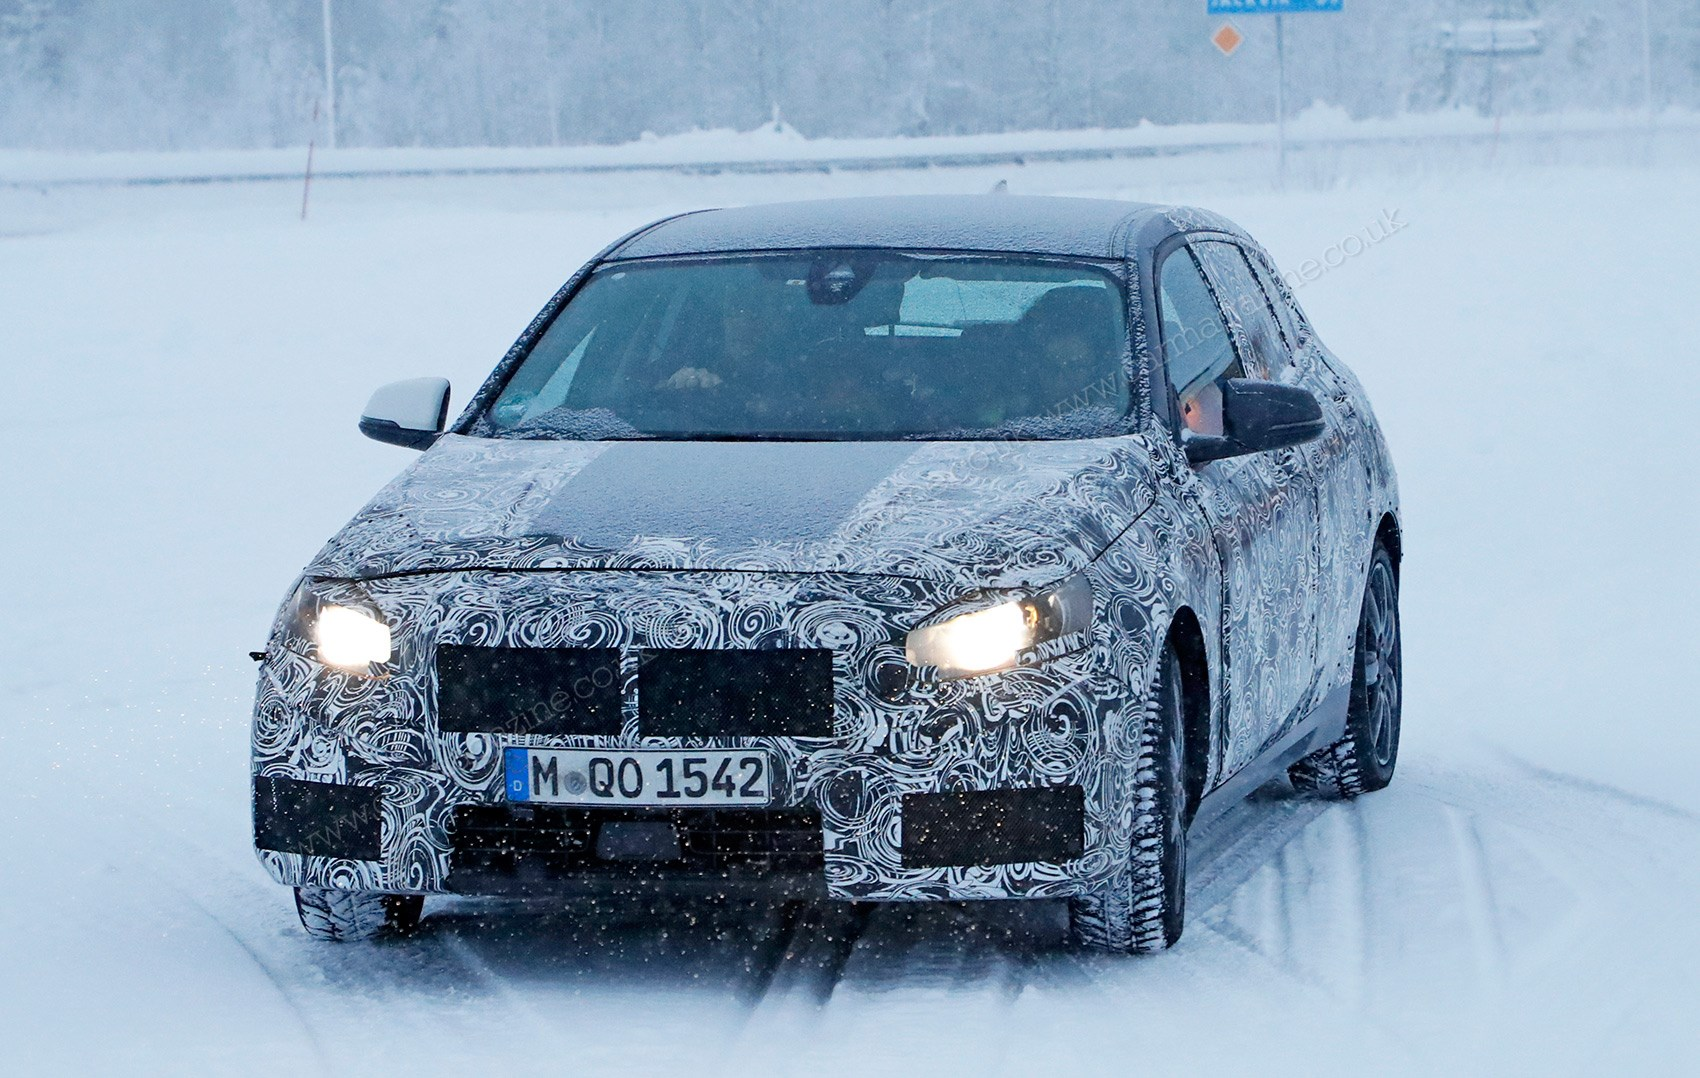 All BMW Models bmw 1 series variants New front-wheel drive BMW 1-series spied winter testing by CAR ...